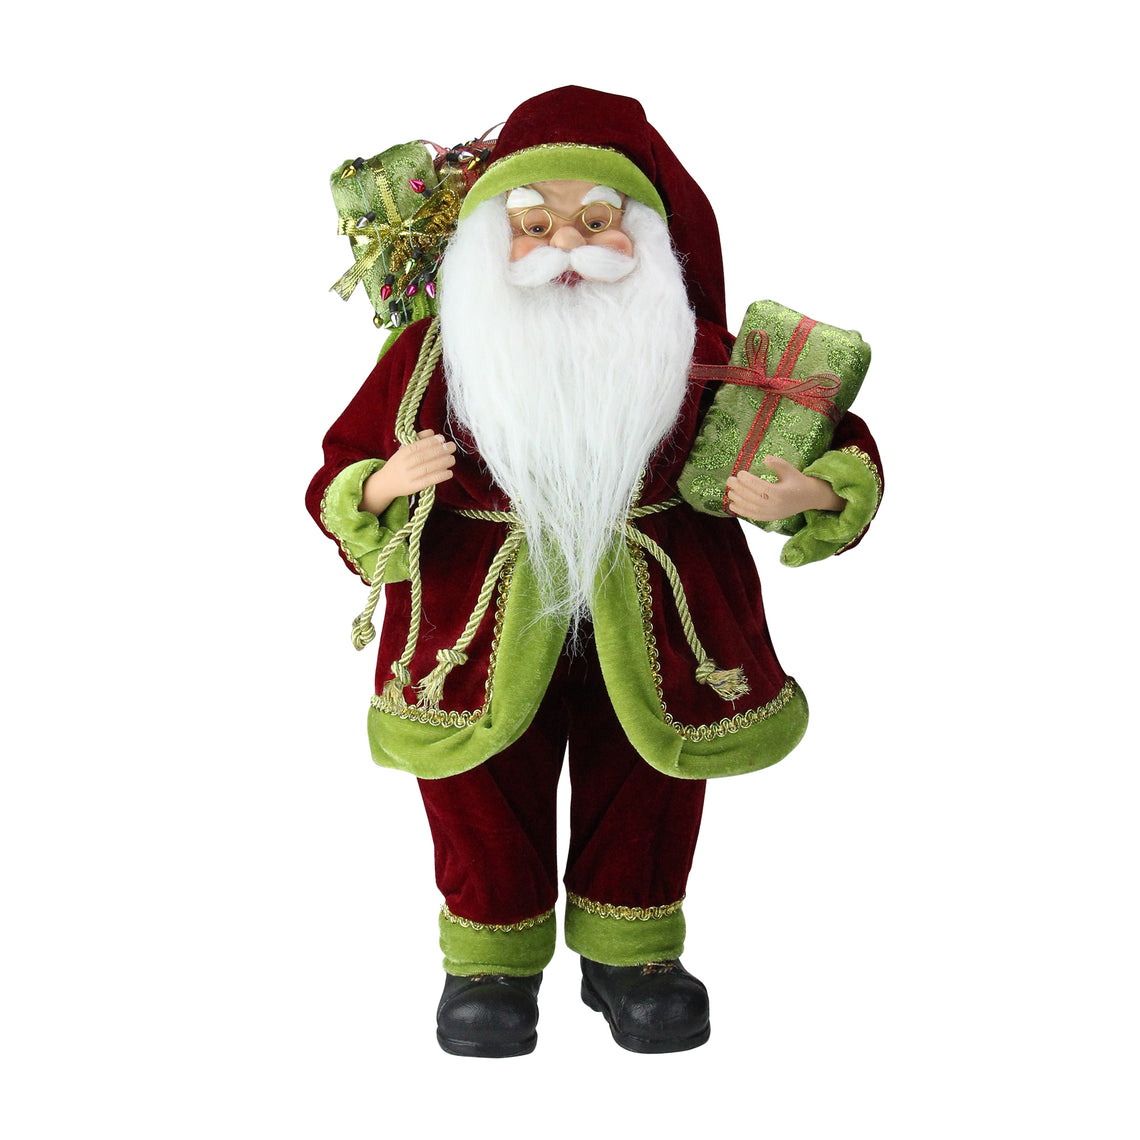 16 Inch Grand Imperial Red Green And Gold Standing Santa Claus Christmas Figure With Gift Bag